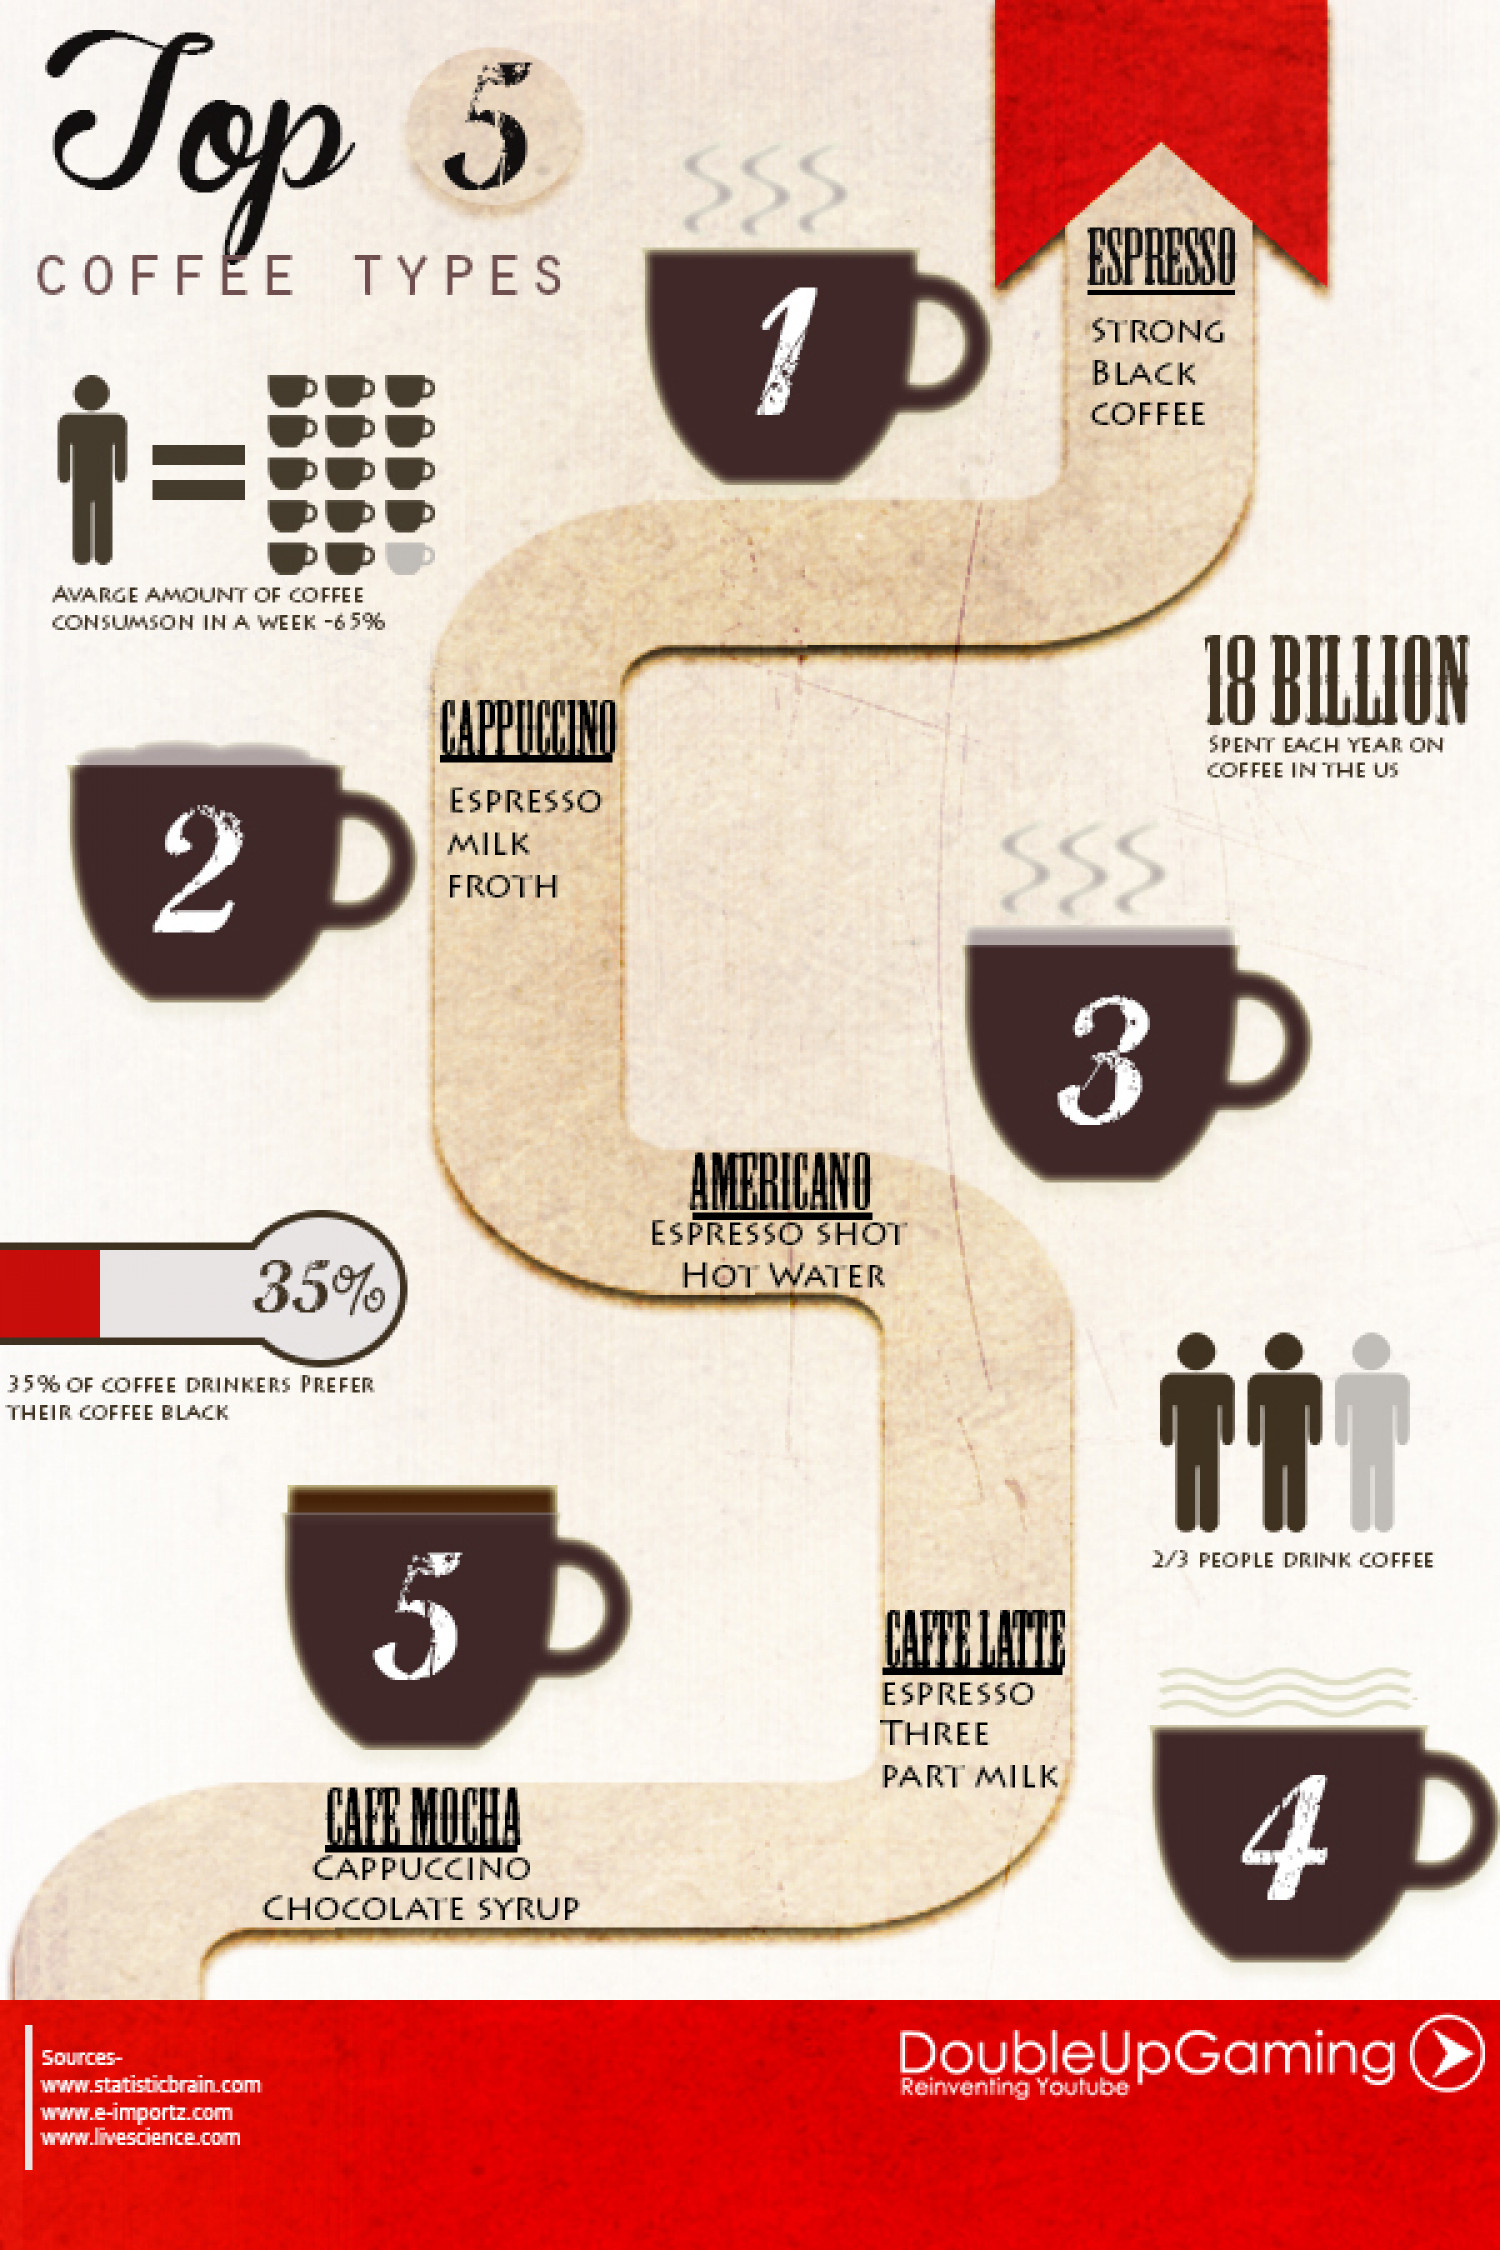 Top 5 Coffee Types - Coffee Facts Infographic